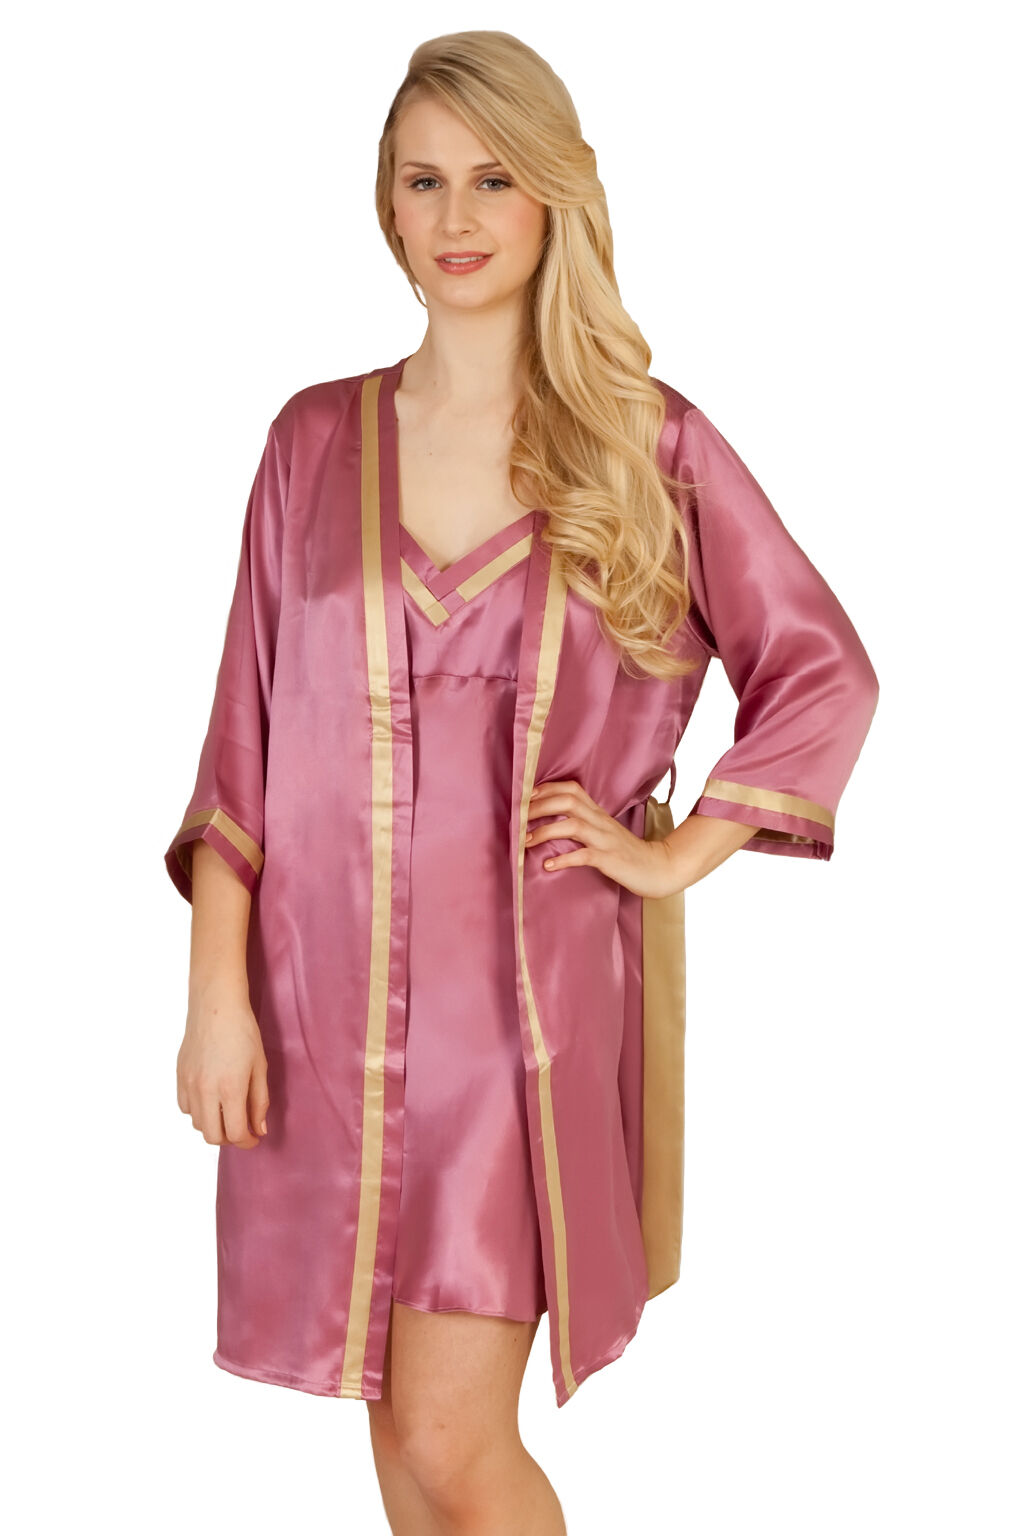 Luxurious Pure Silk Empire pink Dressing Gown NEW With Gift Box Size S